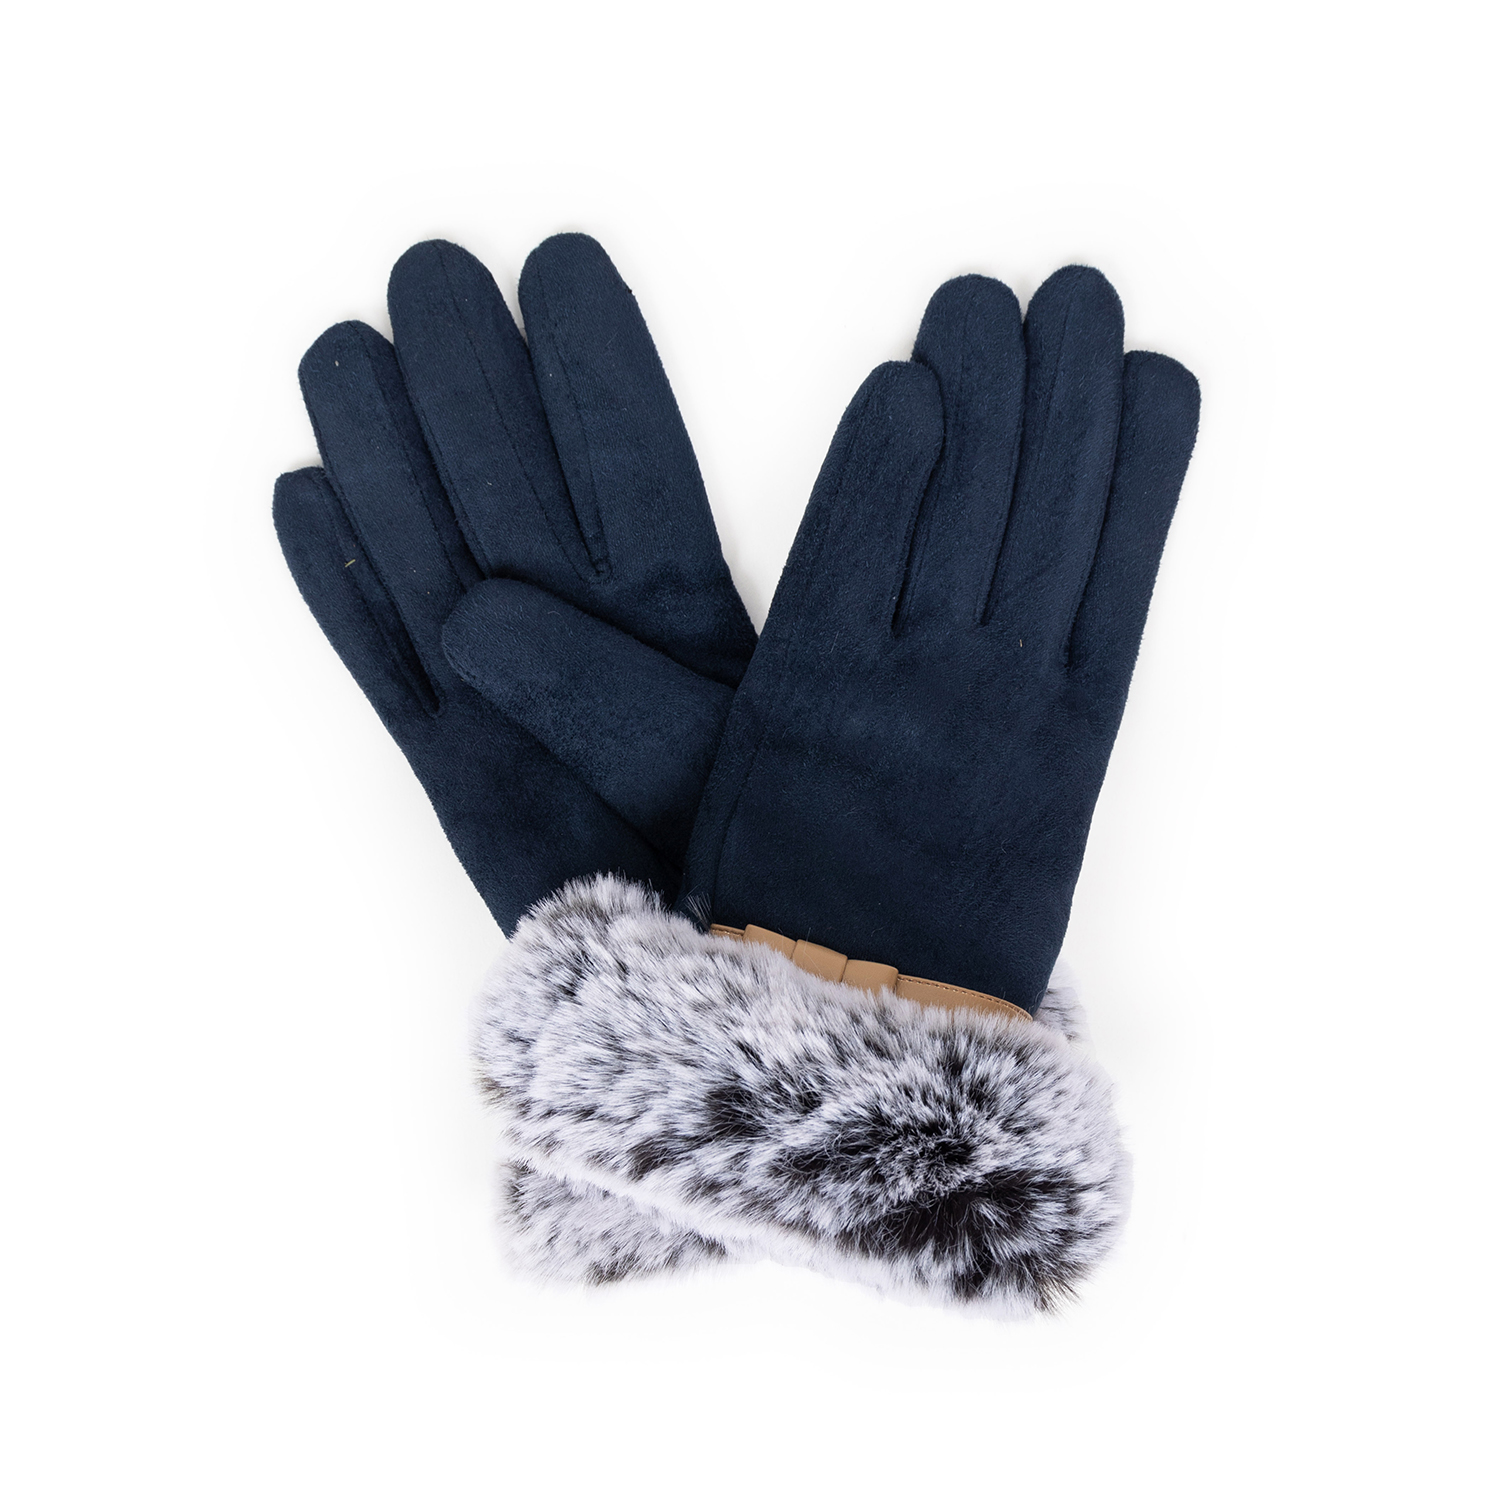 Powder – Navy Blue Faux Suede Penelope Gloves with Powder Presentation Gift Bag